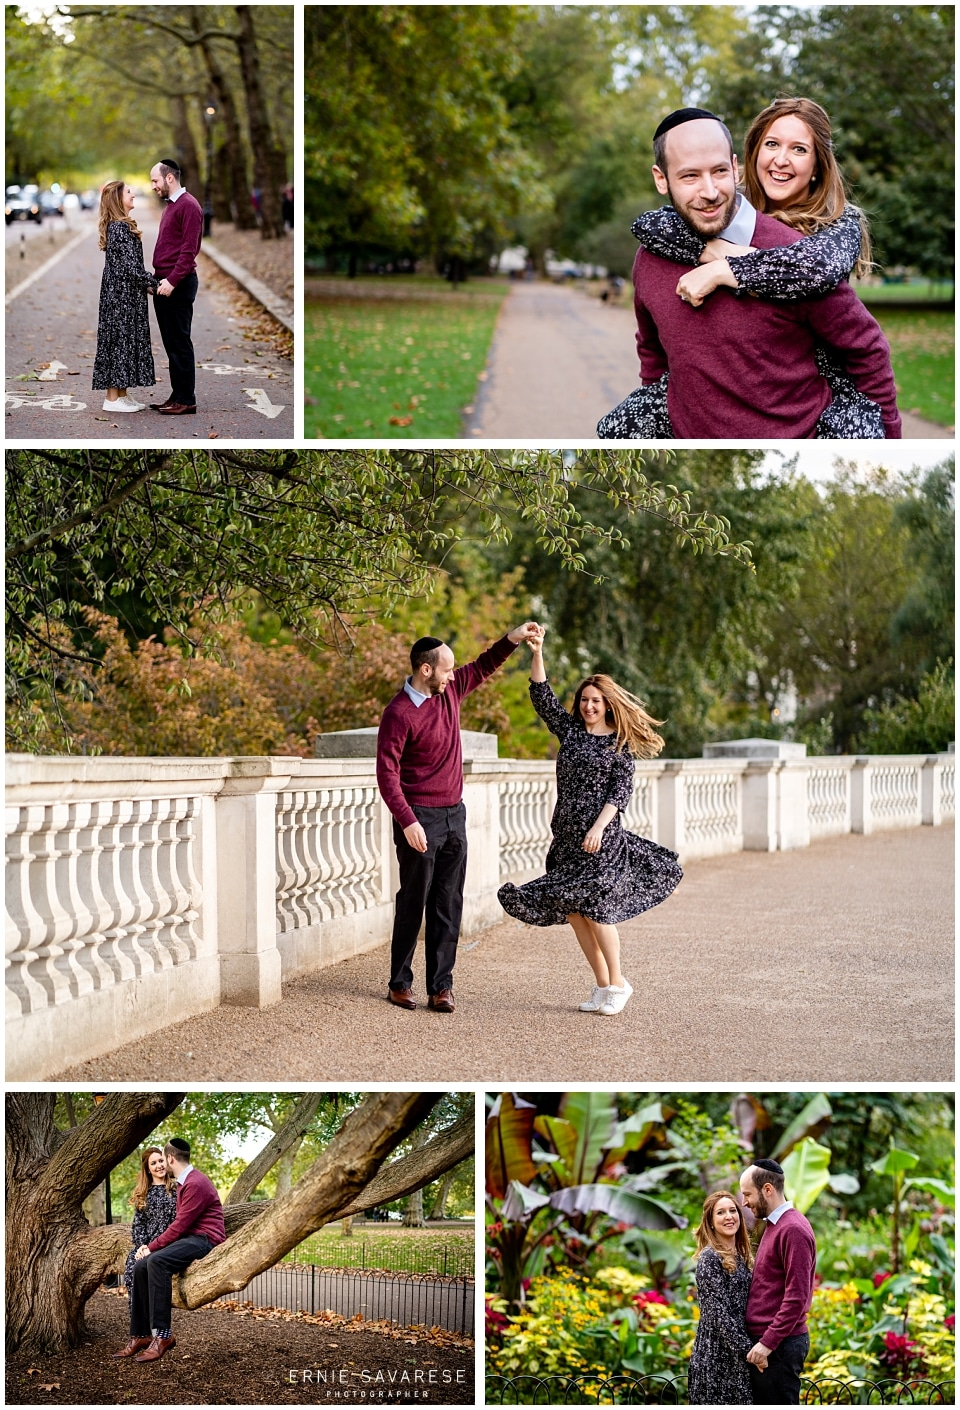 Couples Portrait Photographer London